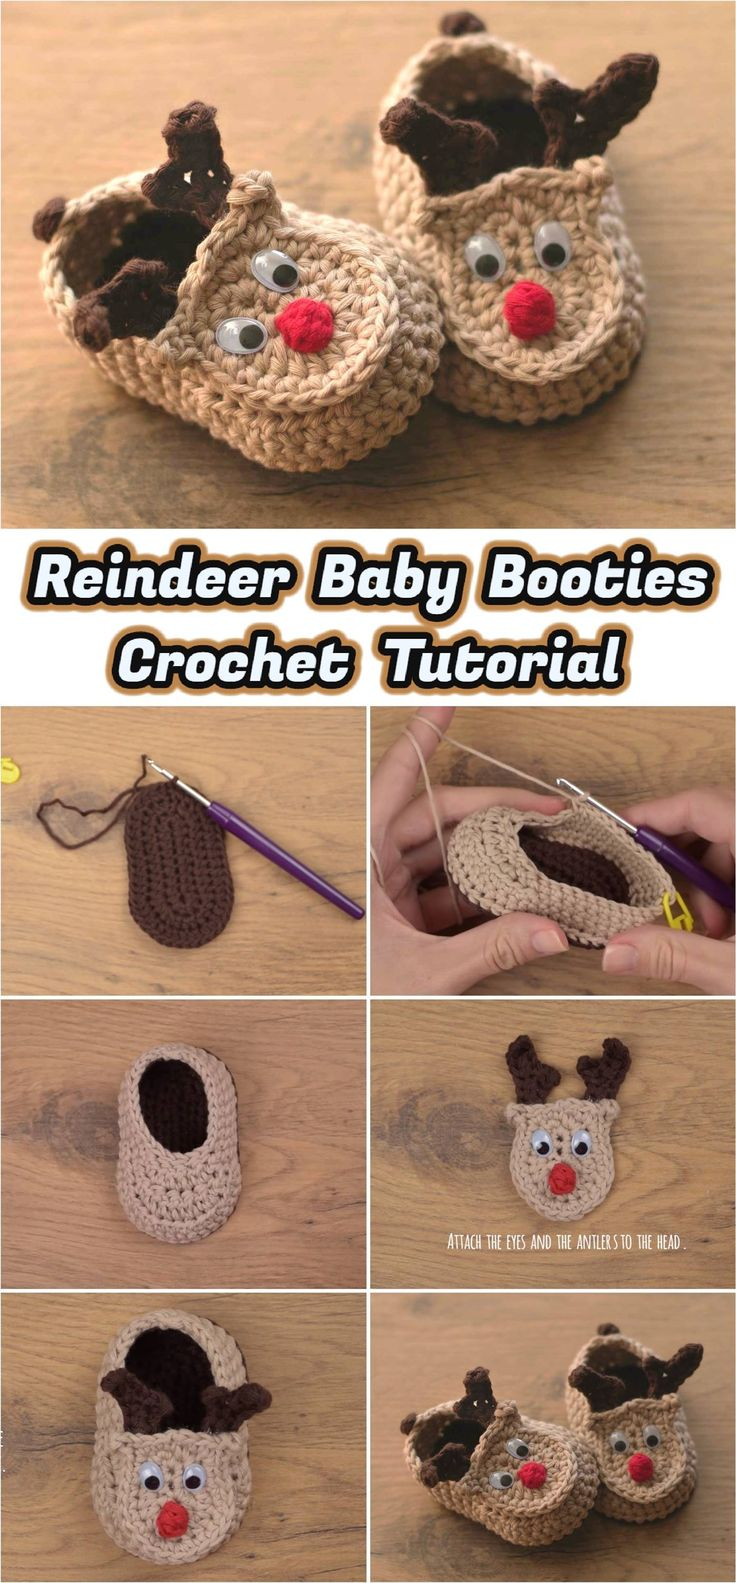 Crochet Rudy The Reindeer Baby Booties